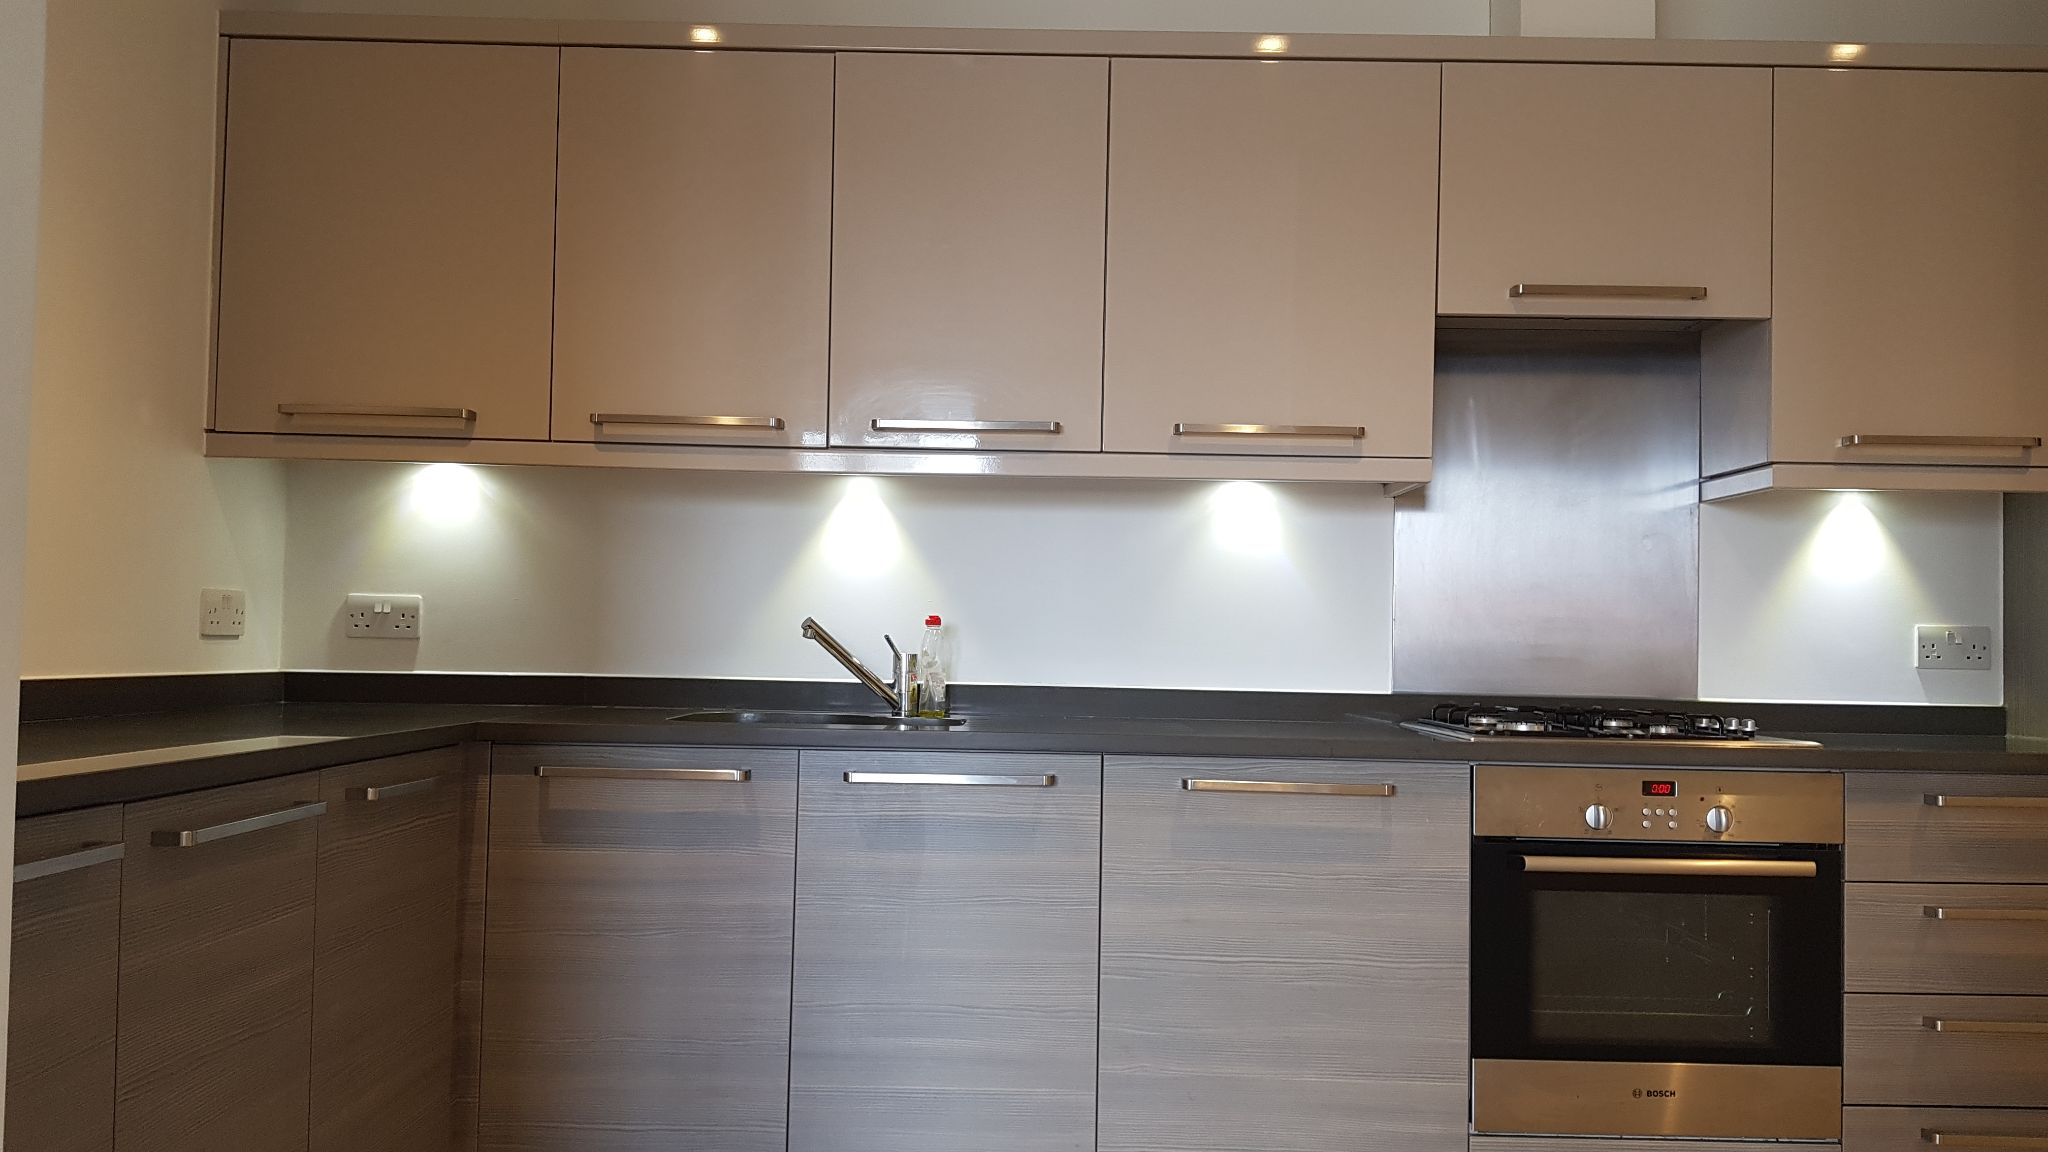 2 bedroom flat flat/apartment To Let in Queensbury - Fully fitted kitchen